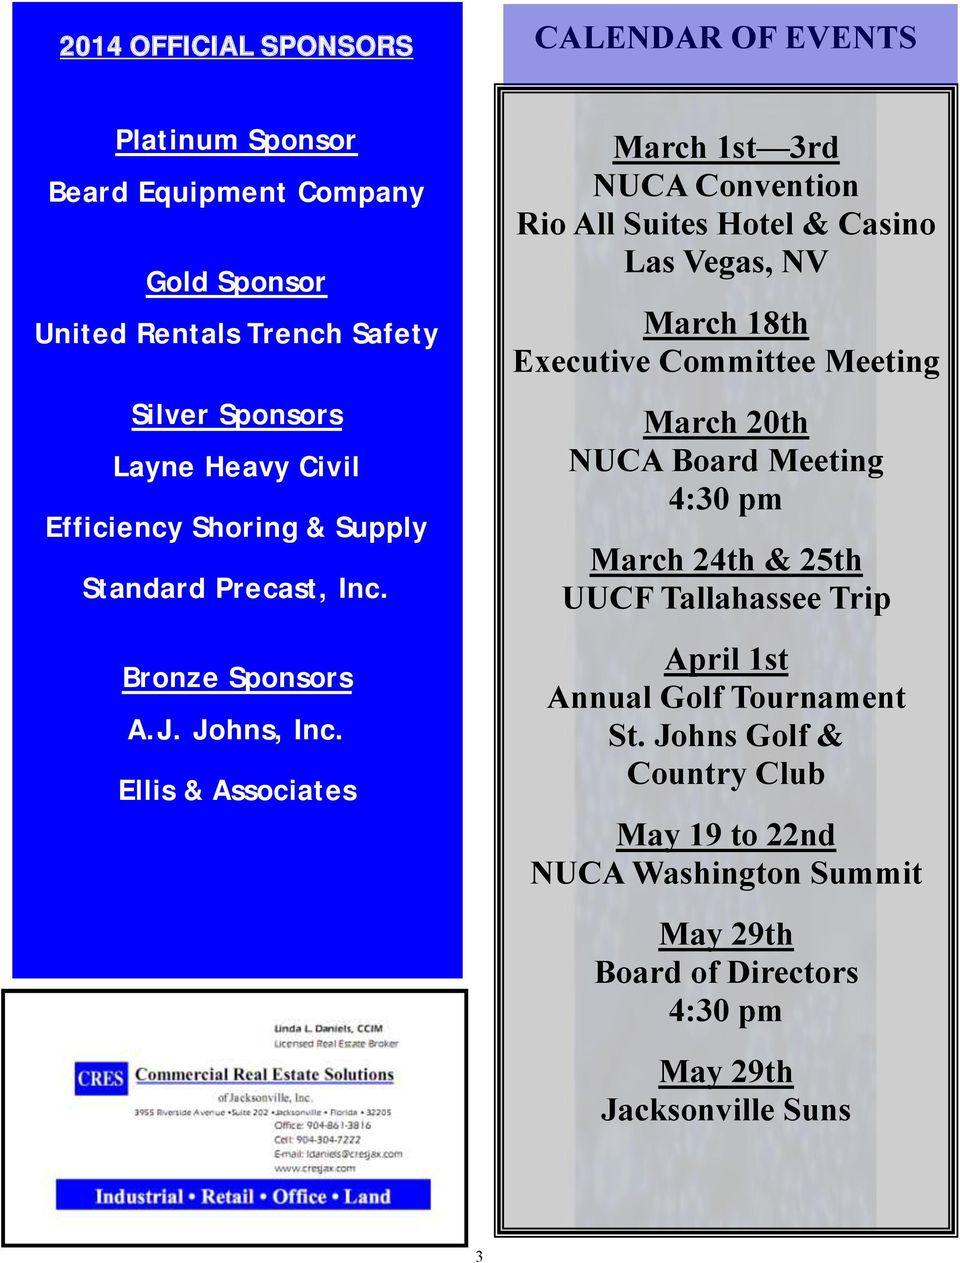 Ellis & Associates March 1st 3rd NUCA Convention Rio All Suites Hotel & Casino Las Vegas, NV March 18th Executive Committee Meeting March 20th NUCA Board